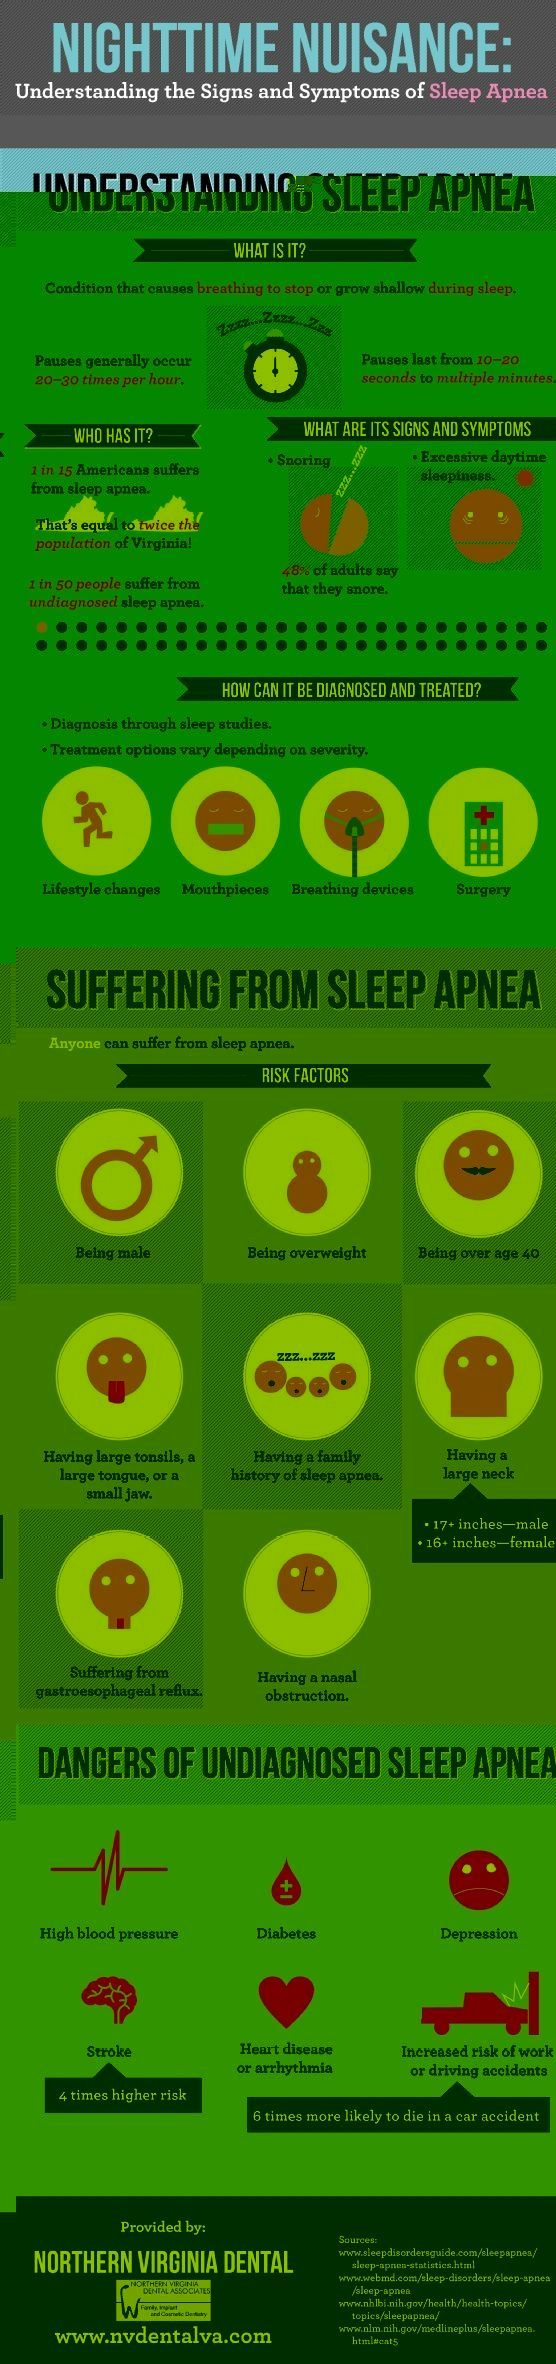 Best 25+ Snoring husband ideas on Pinterest | Husband ...  anxiety and sleep, anxiety and green tea, anxiety sensor, how to relax from anxiety, green tea for anxiety, anxiety solutions maine, anxiety relief devices, anxiety in sleep